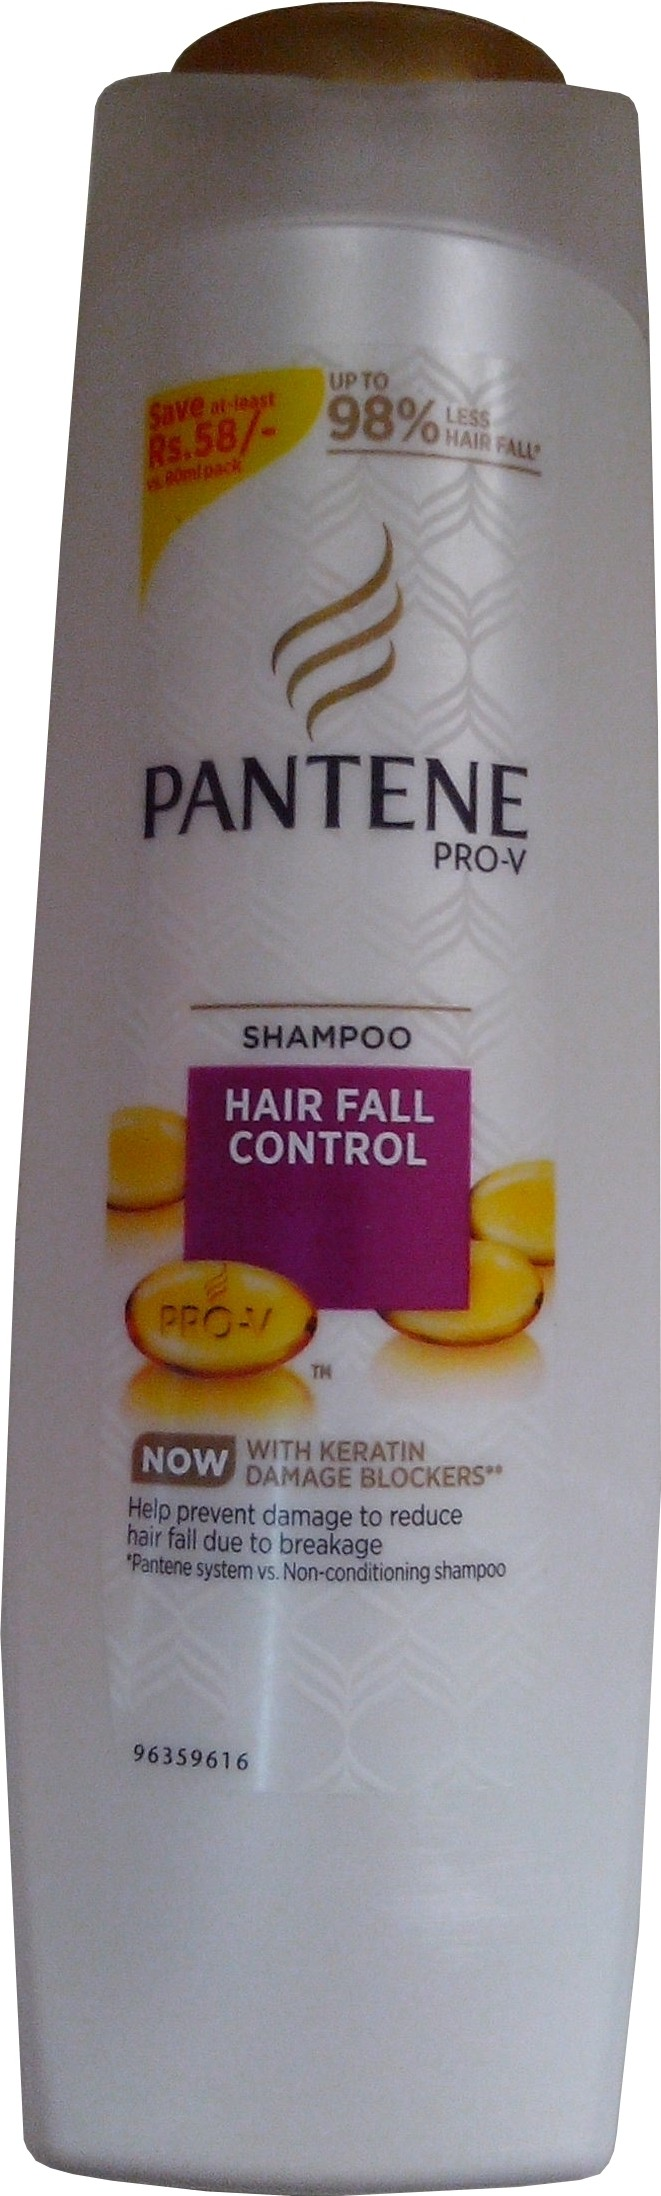 Pantene Price List In India Buy Online At Best Sampo Hairfall Control 750ml Shampoo 340 Ml